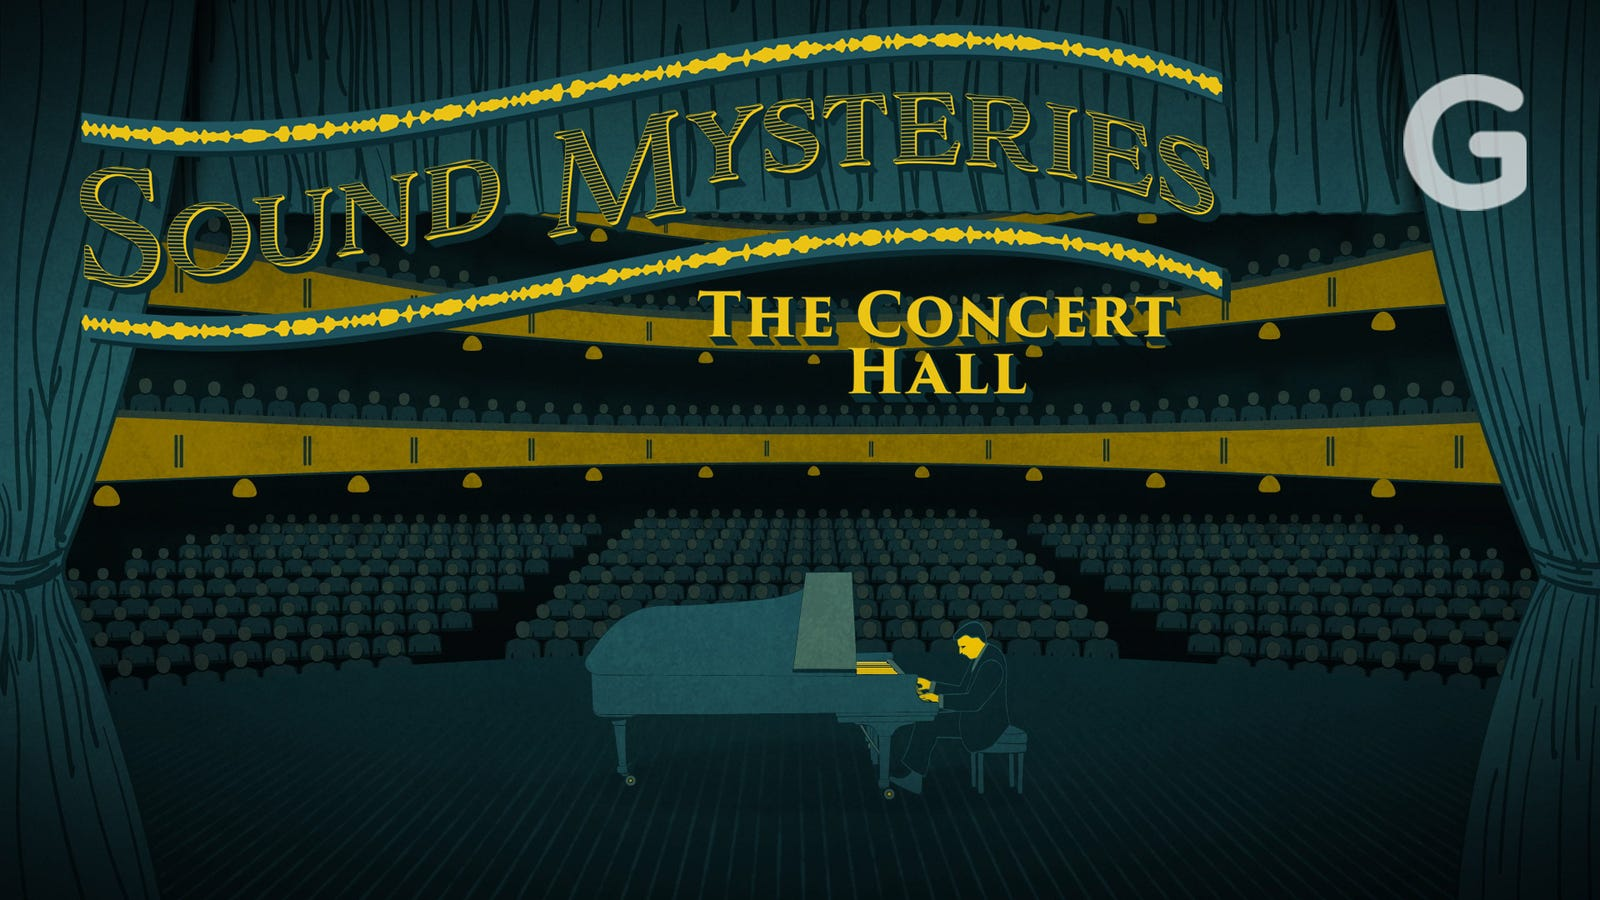 What Caused Carnegie Hall to Lose Its Famous Acoustics in 1986?